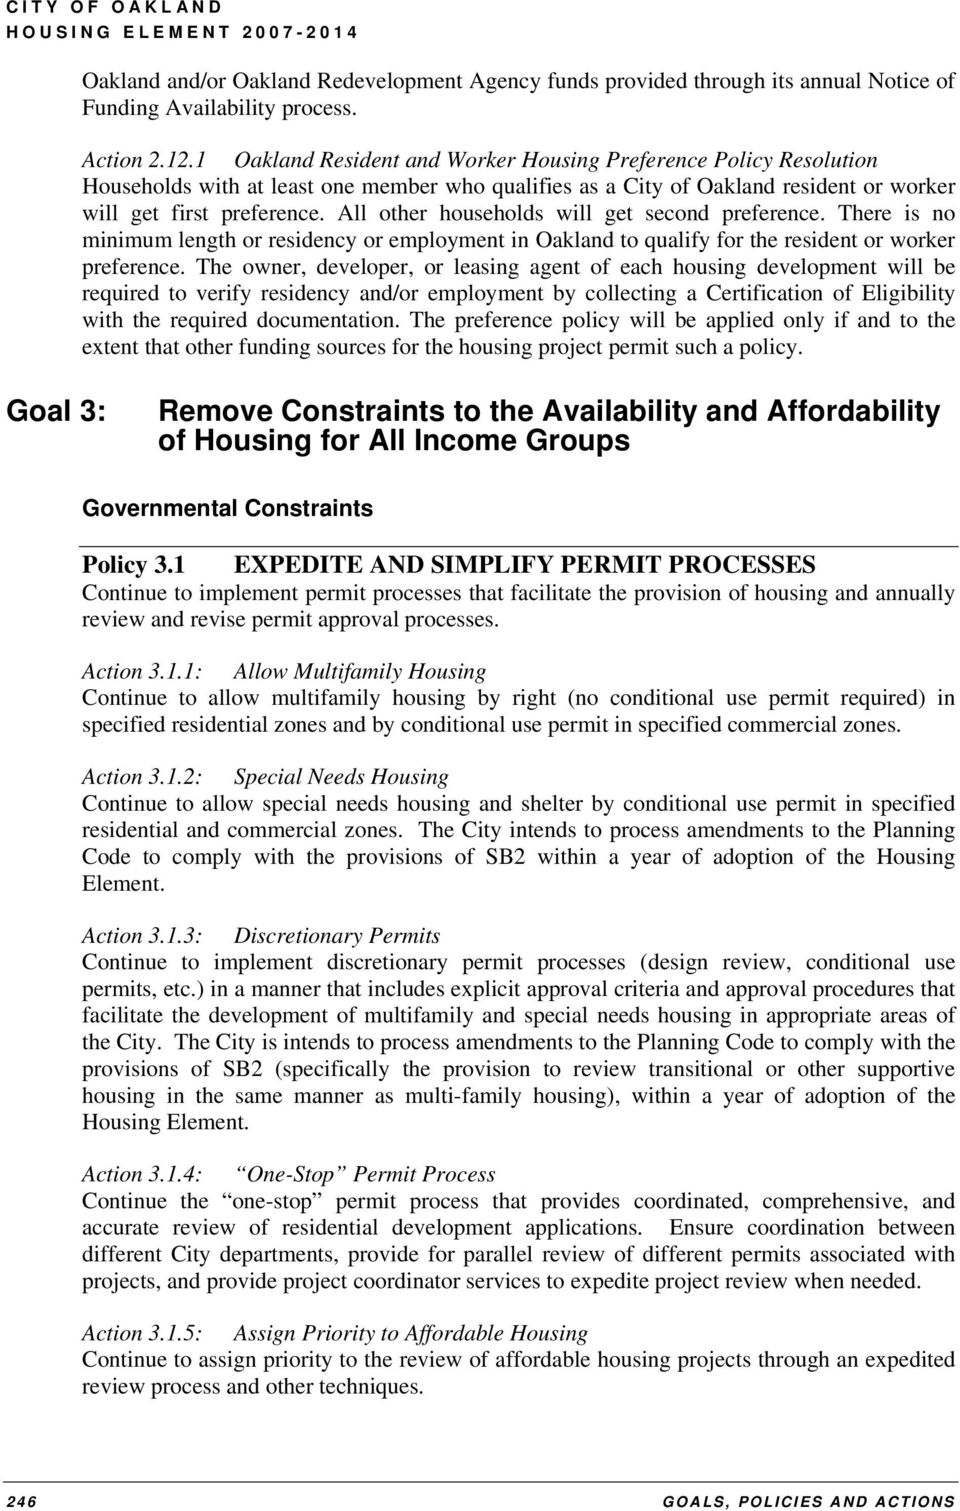 All other households will get second preference. There is no minimum length or residency or employment in Oakland to qualify for the resident or worker preference.